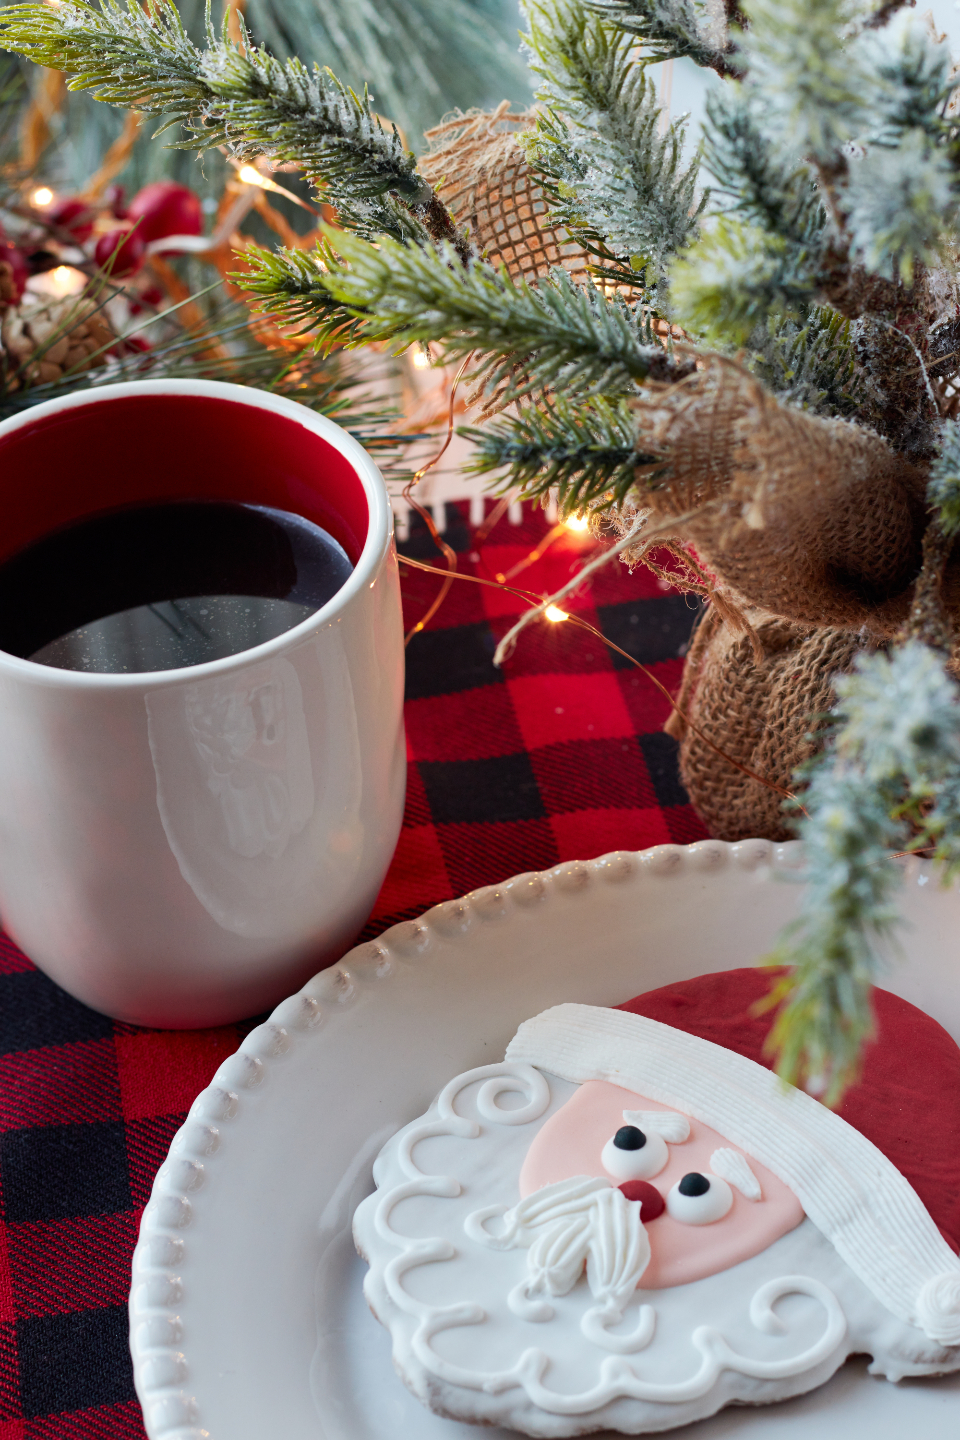 How To Cope With The Festive Season After A Tragedy